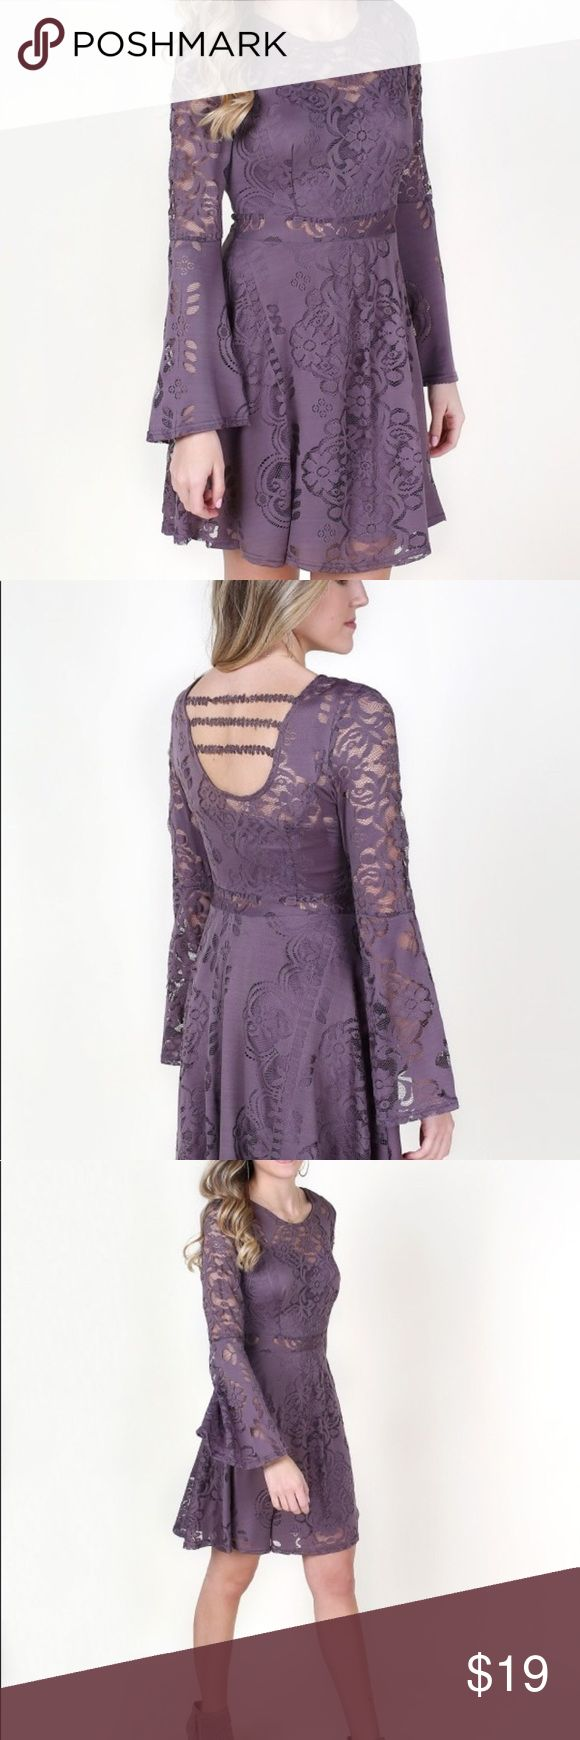 """Altar'd State Purple Lace Bell Sleeve Dress 34"""", 100% nylon. Fitted with long sleeves. Hand wash cold Altar'd State Dresses Long Sleeve"""